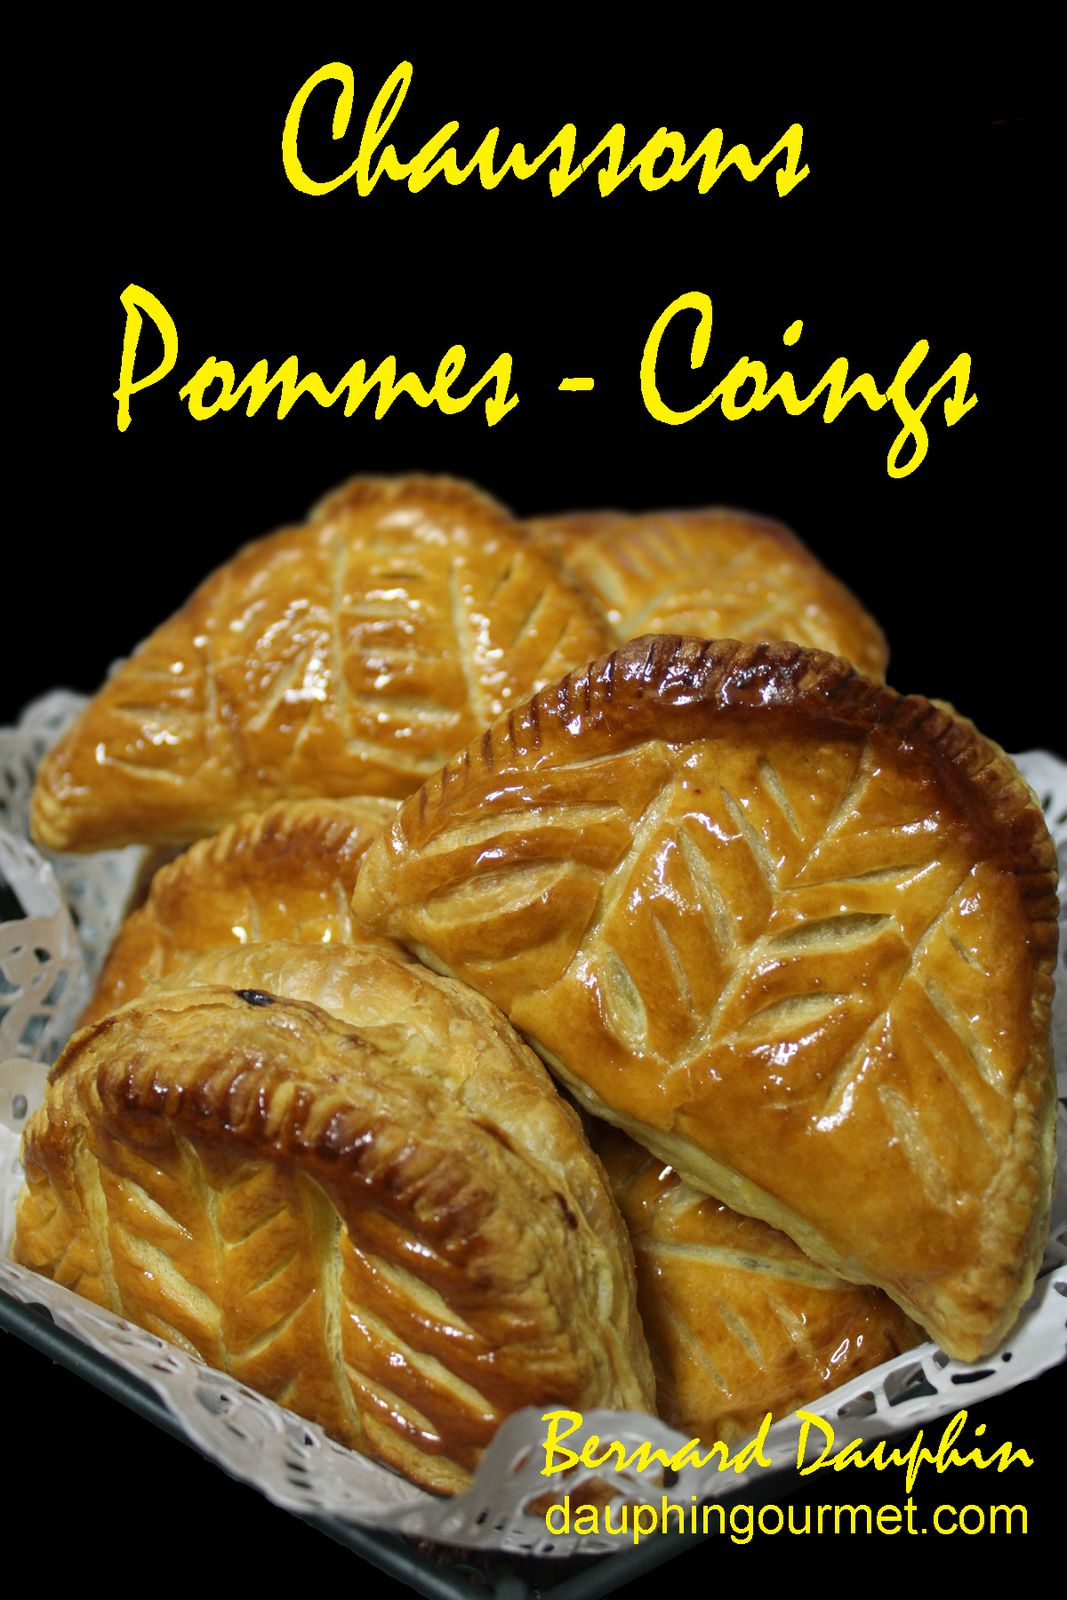 CHAUSSONS AUX POMMES - COINGS - MIEL